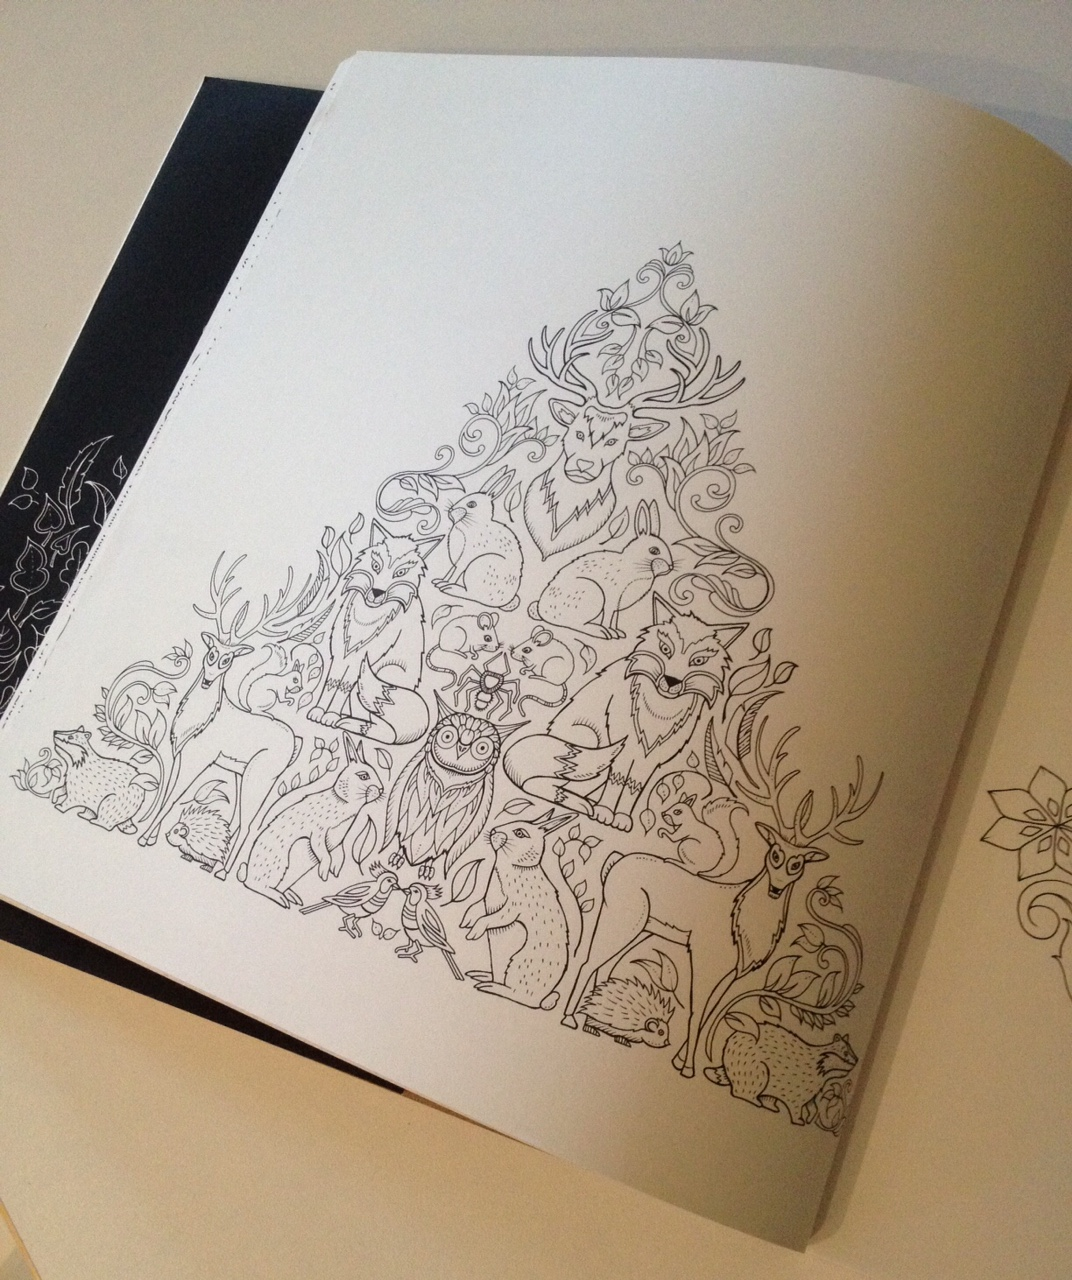 The enchanted forest coloring book review - Enchanted Forest Colouring Gift Grapevine Kid S Book Review